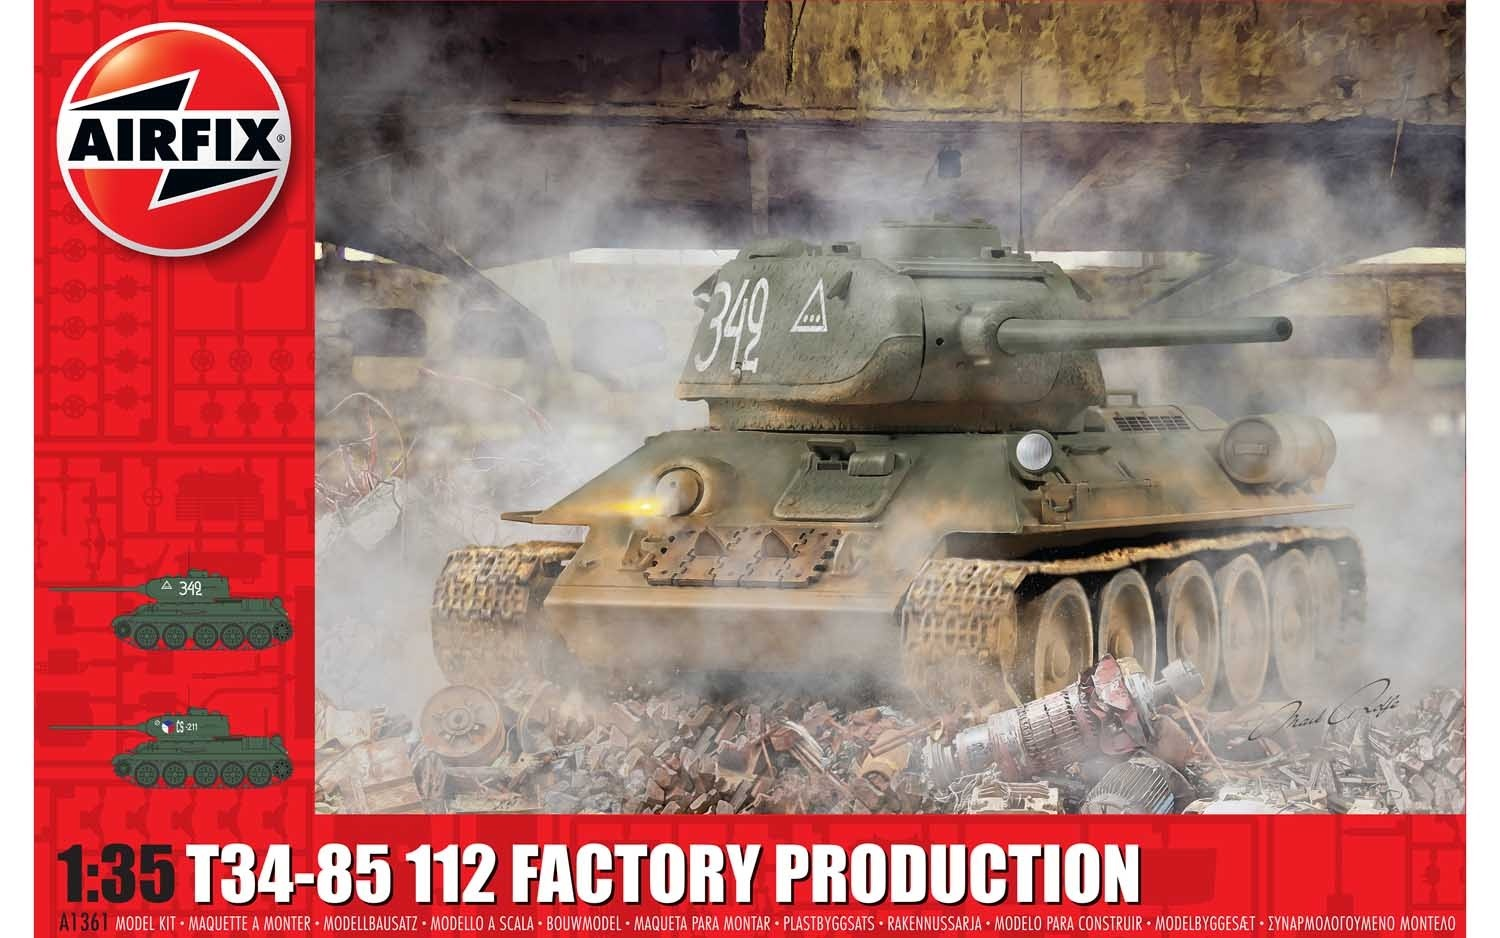 T34/85, 112 Factory Production